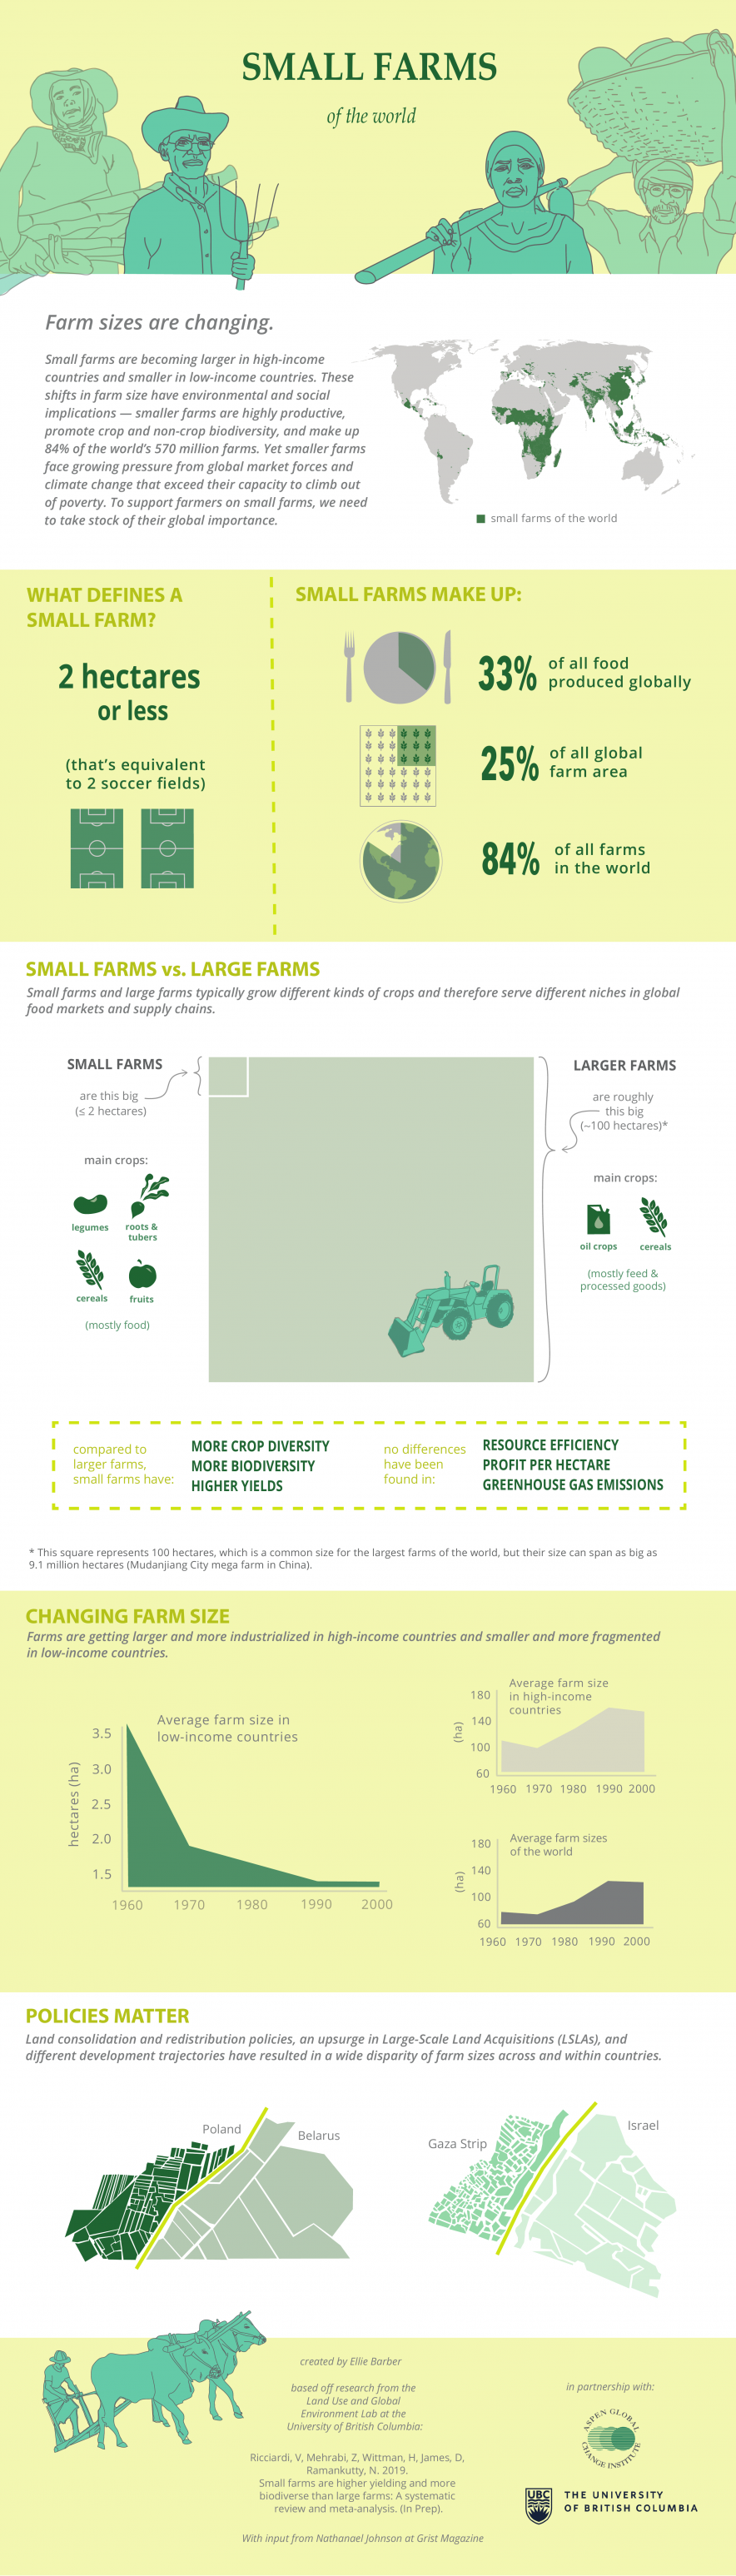 Small Farms of the World